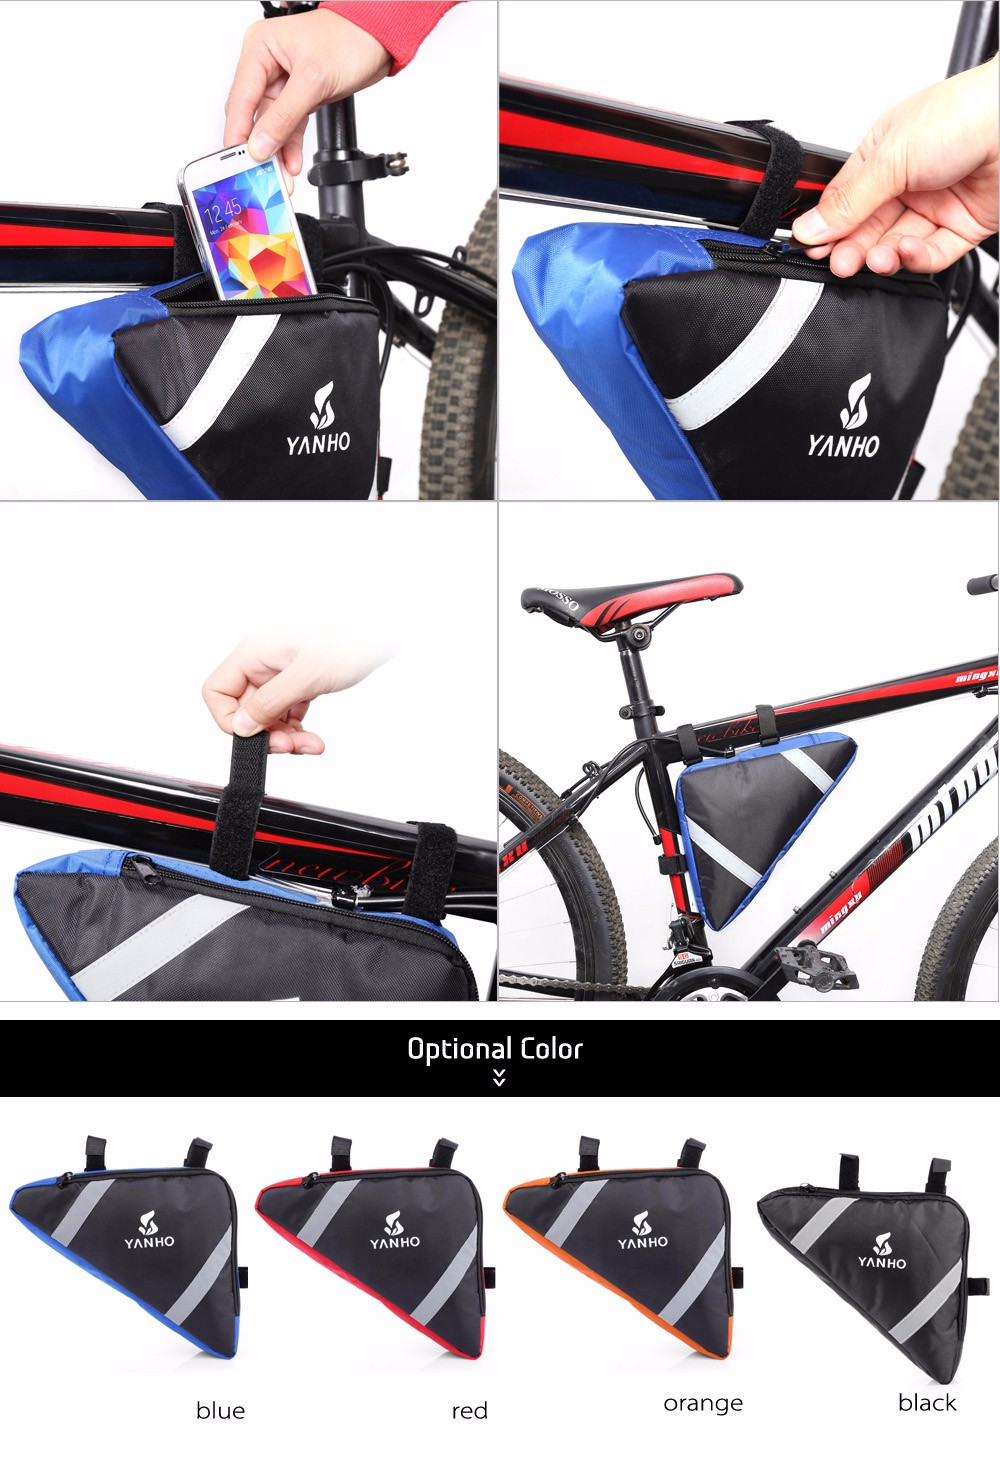 YANHO YA085 10L Triangle Bike Front Tube Bag with Reflective Stripes Cycling Accessories